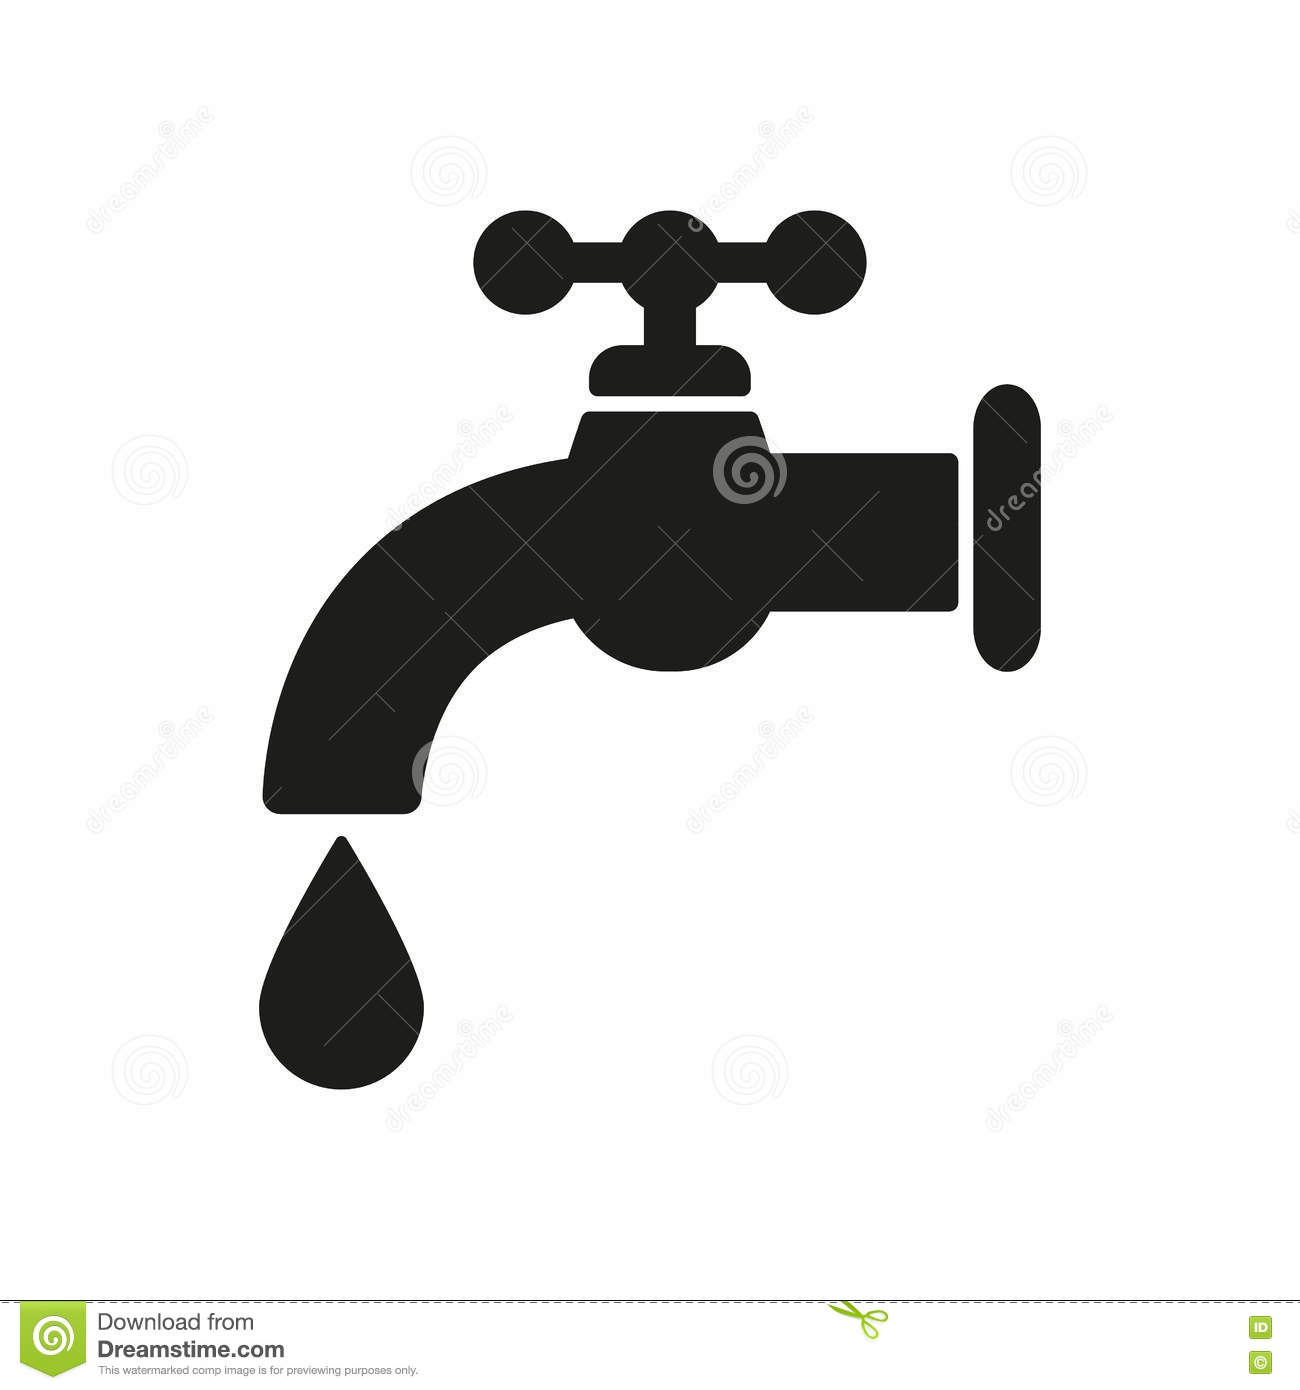 Drinking Water Faucet >> The Tap Water Icon. Water Symbol. Flat Stock Vector - Illustration of silhouette, shape: 78884301